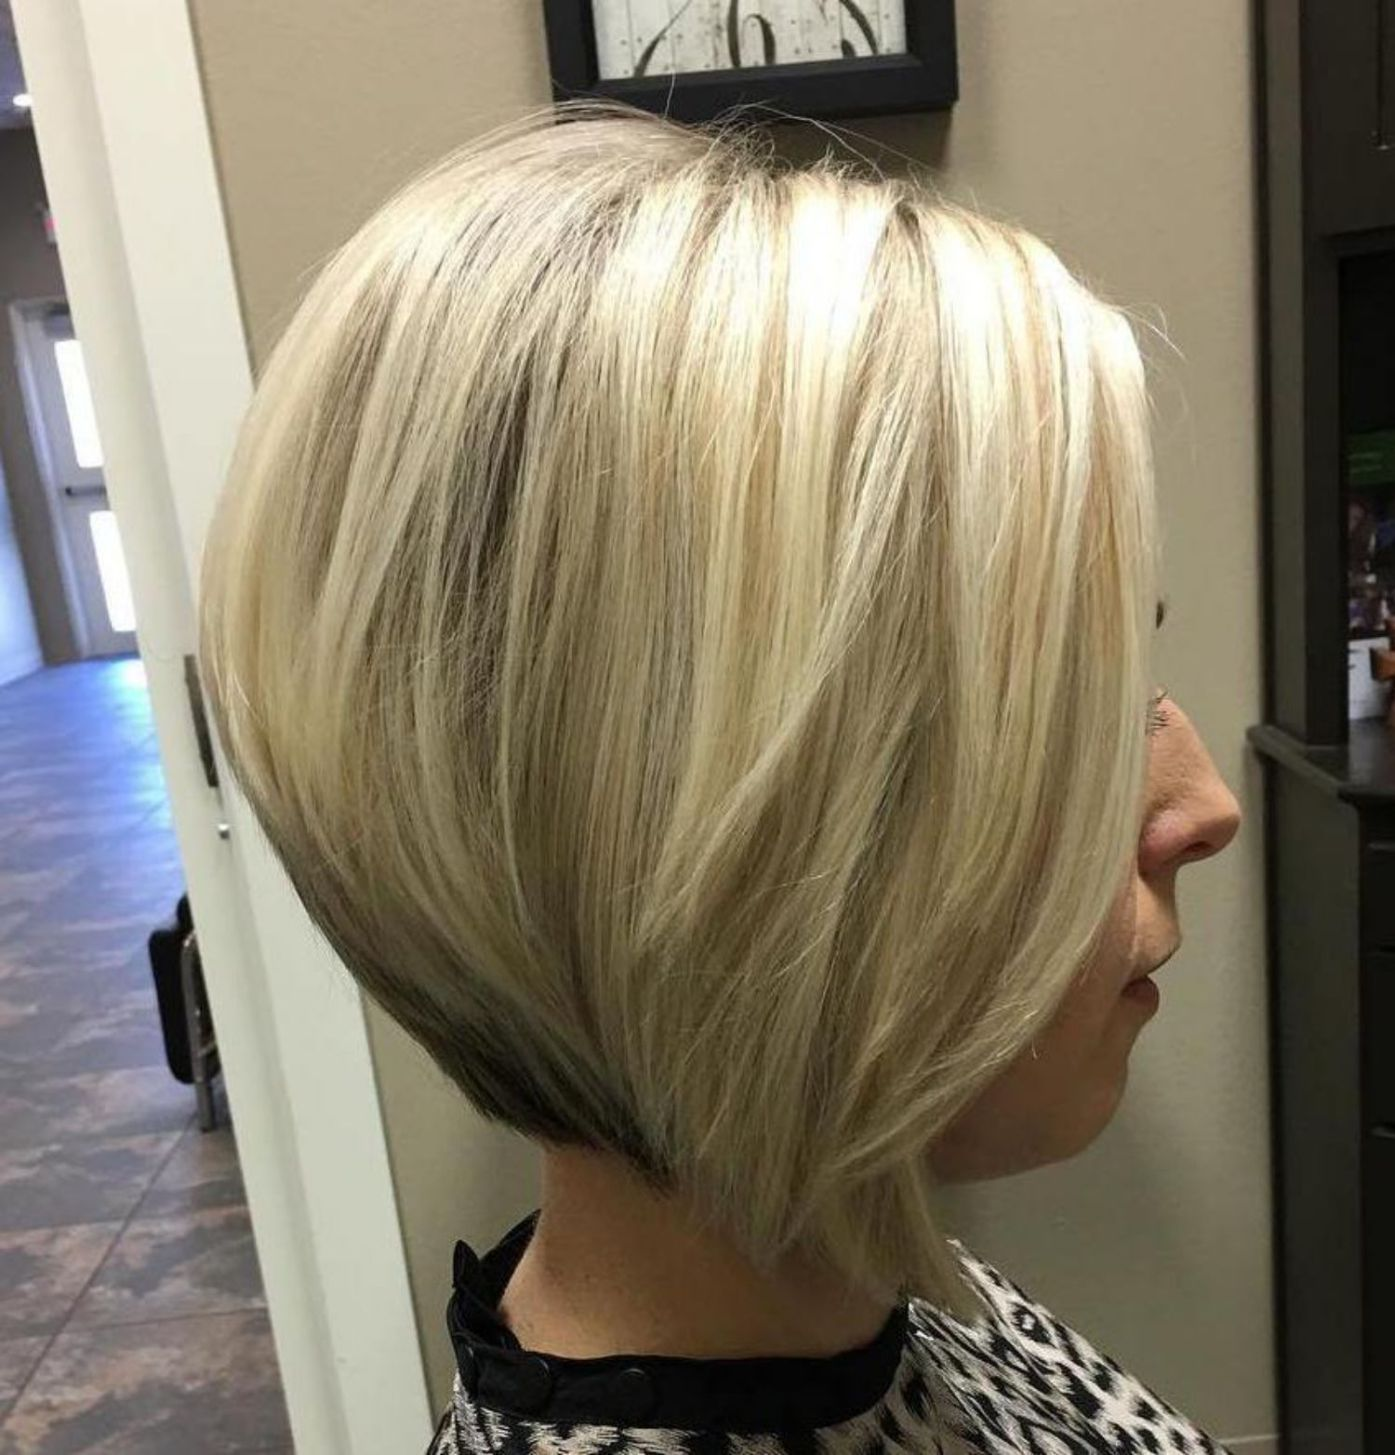 The full stack hottest stacked haircuts hairstyles pinterest